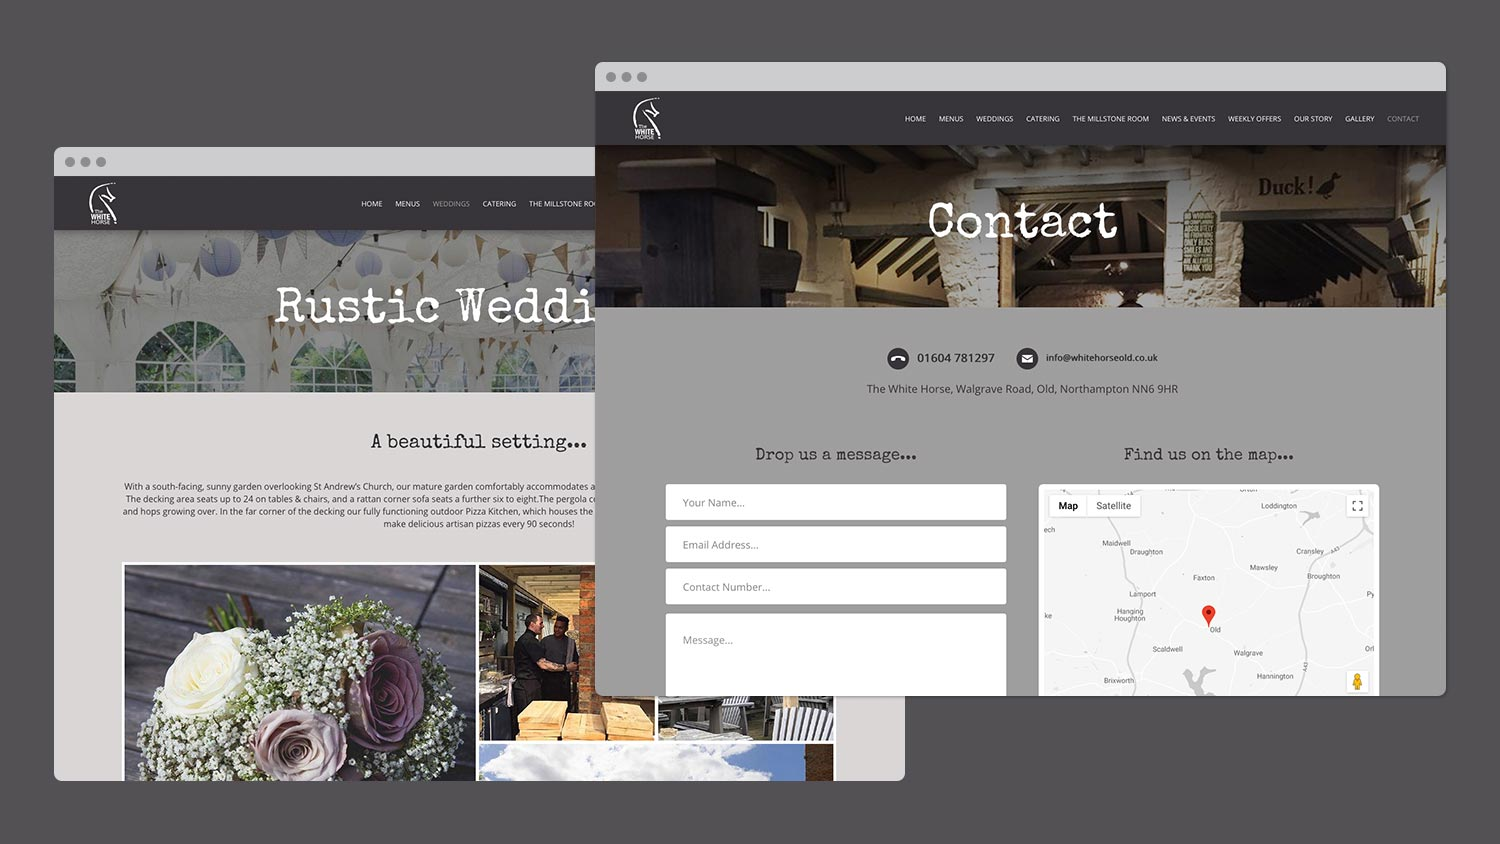 The White Horse - Weddings and Contact Pages